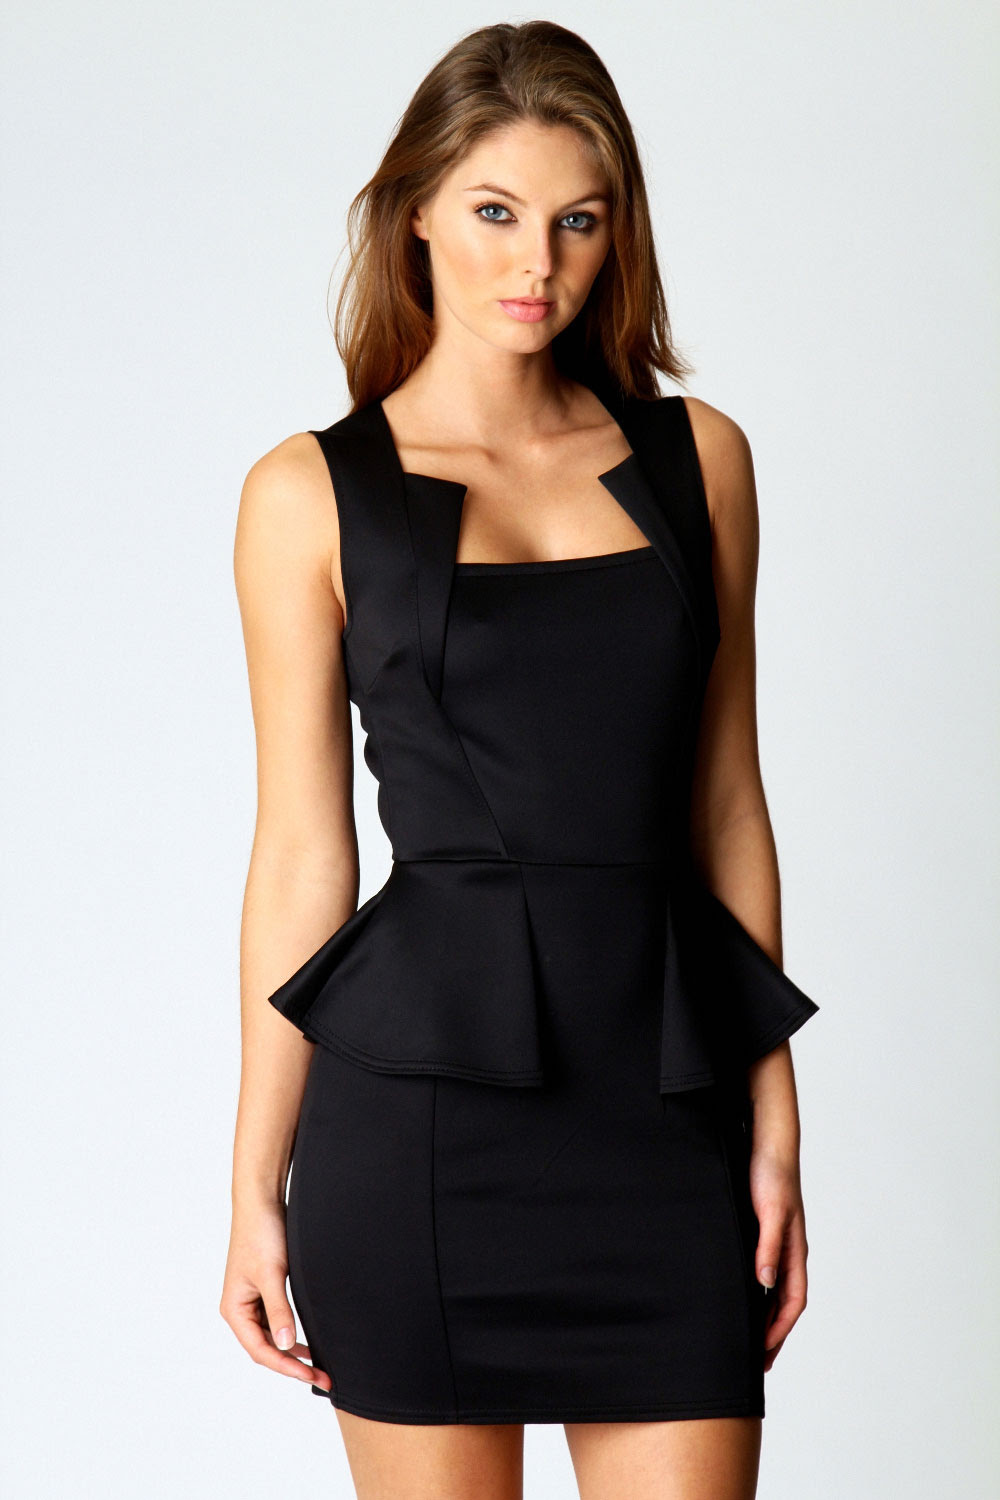 Black bodycon dress square neck up top hand queen